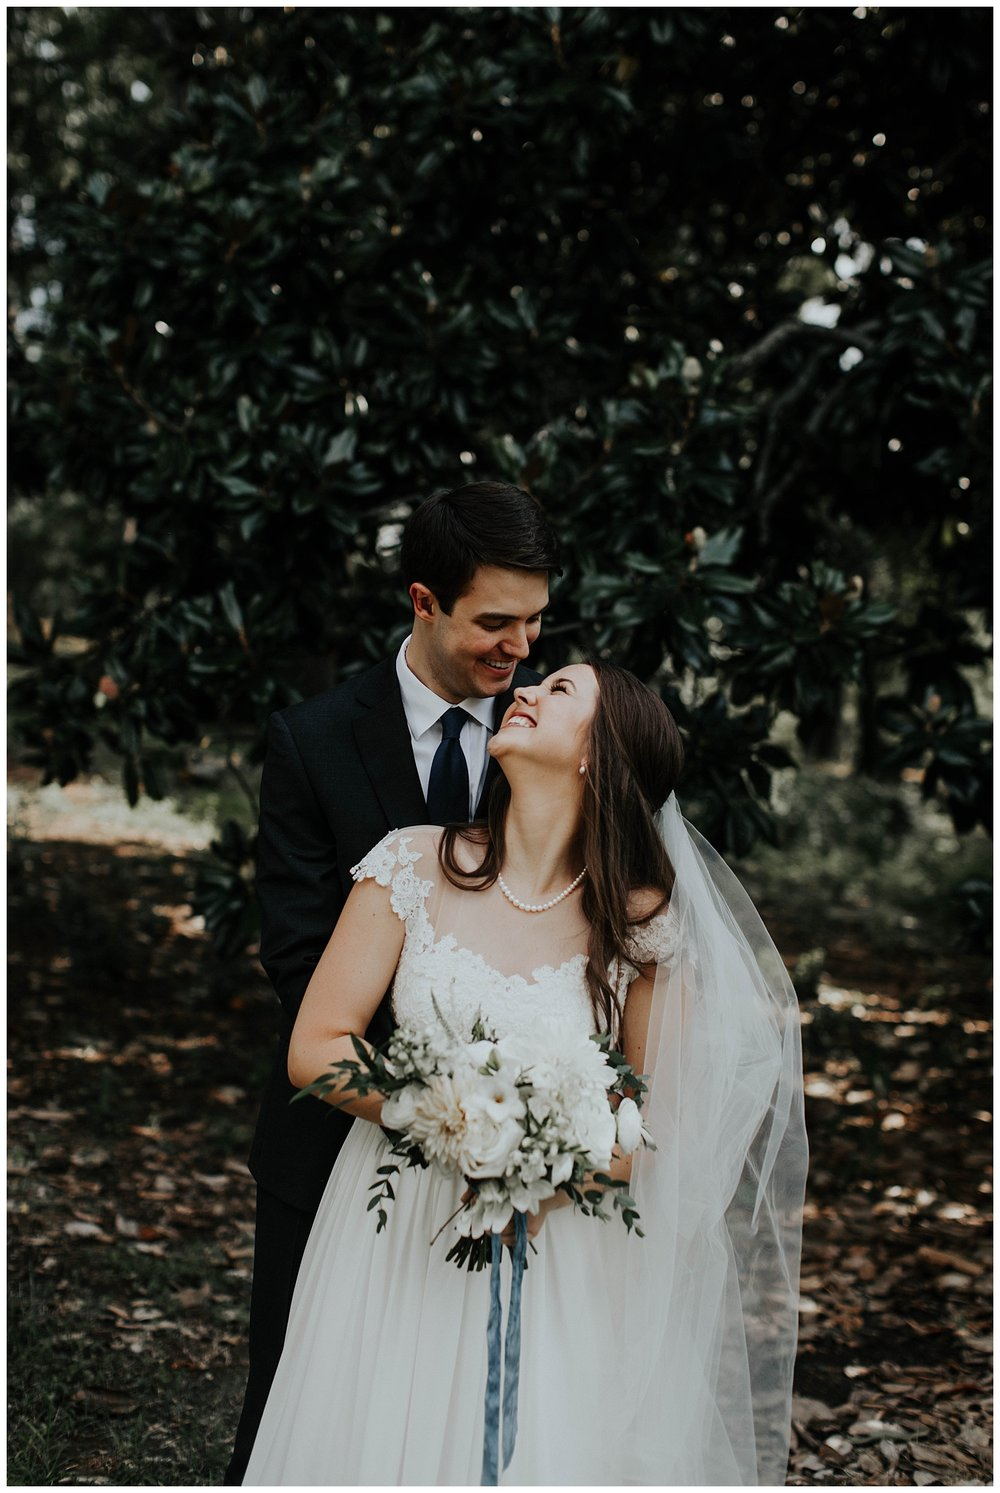 Madalynn Young Photography | Sarah Catherine + Will | Bridge Street Gallery and Loft | Atlanta Wedding Photographer_0181.jpg